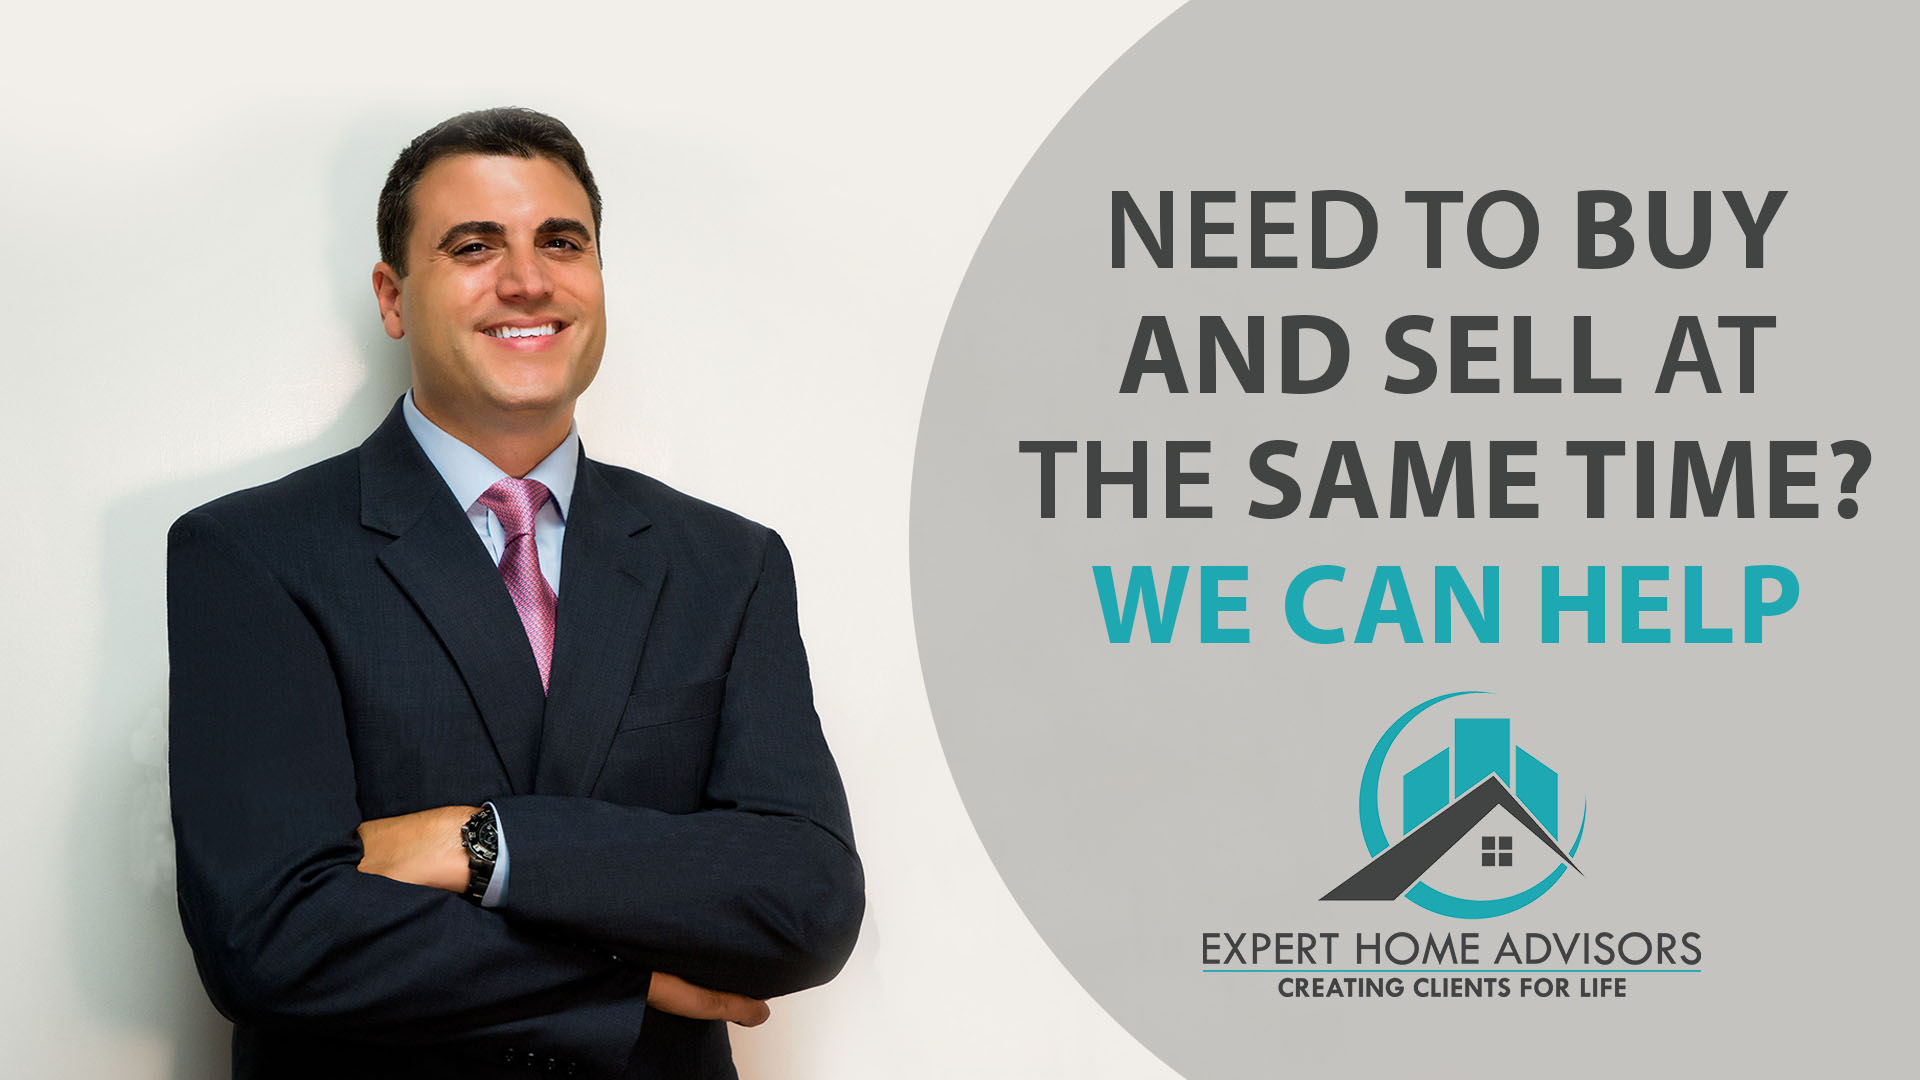 3 Ways We Can Help You Buy and Sell at the Same Time